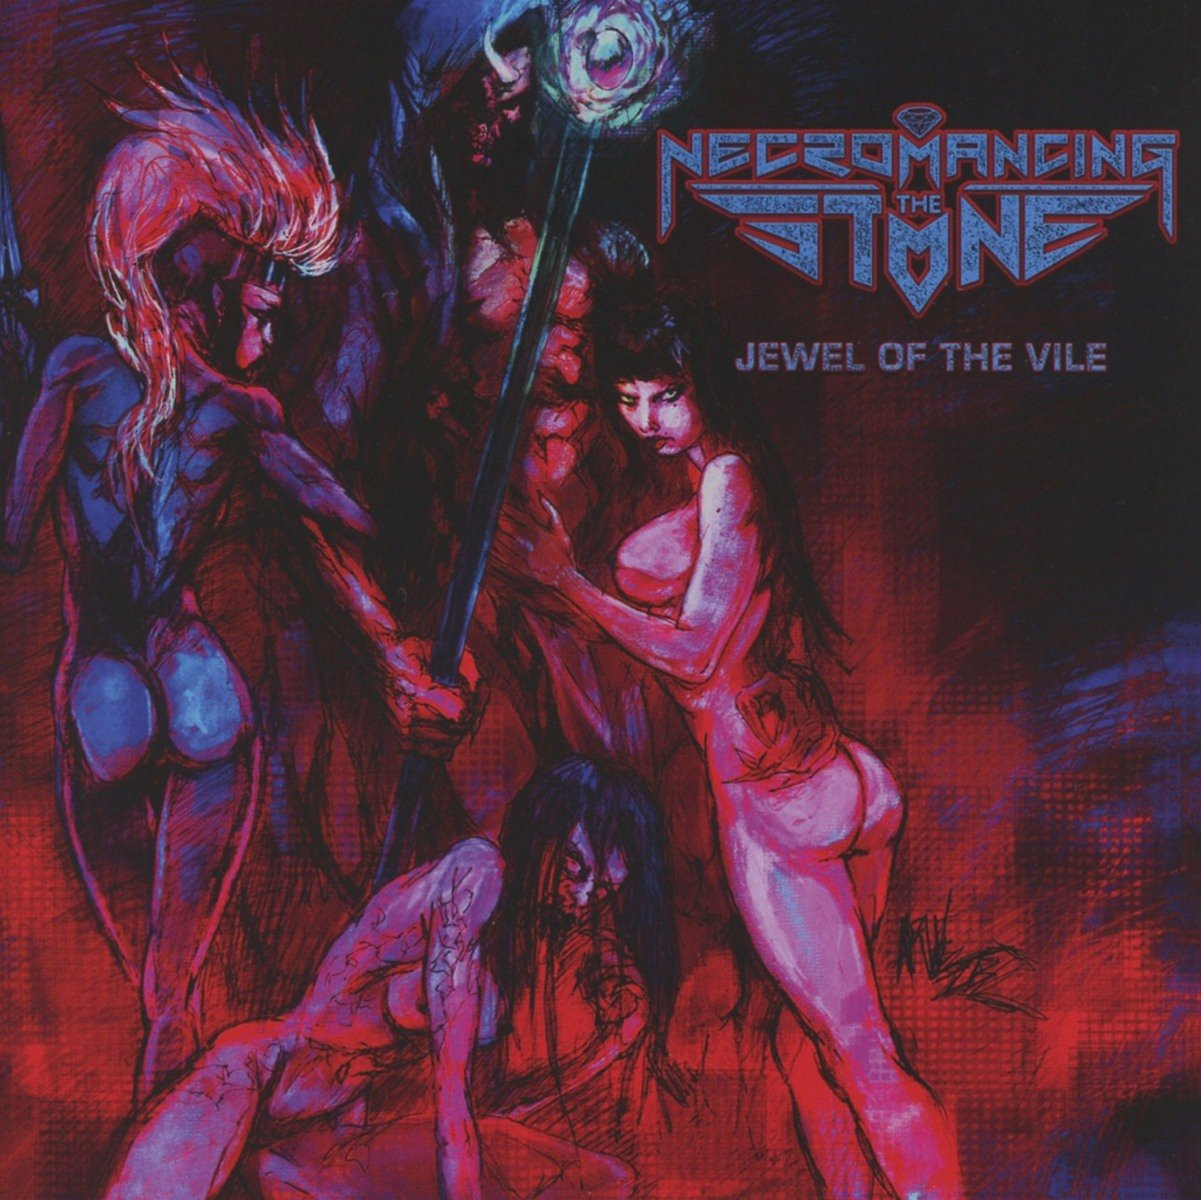 Jewel of the Vile [Audio CD] Necromancing The Stone